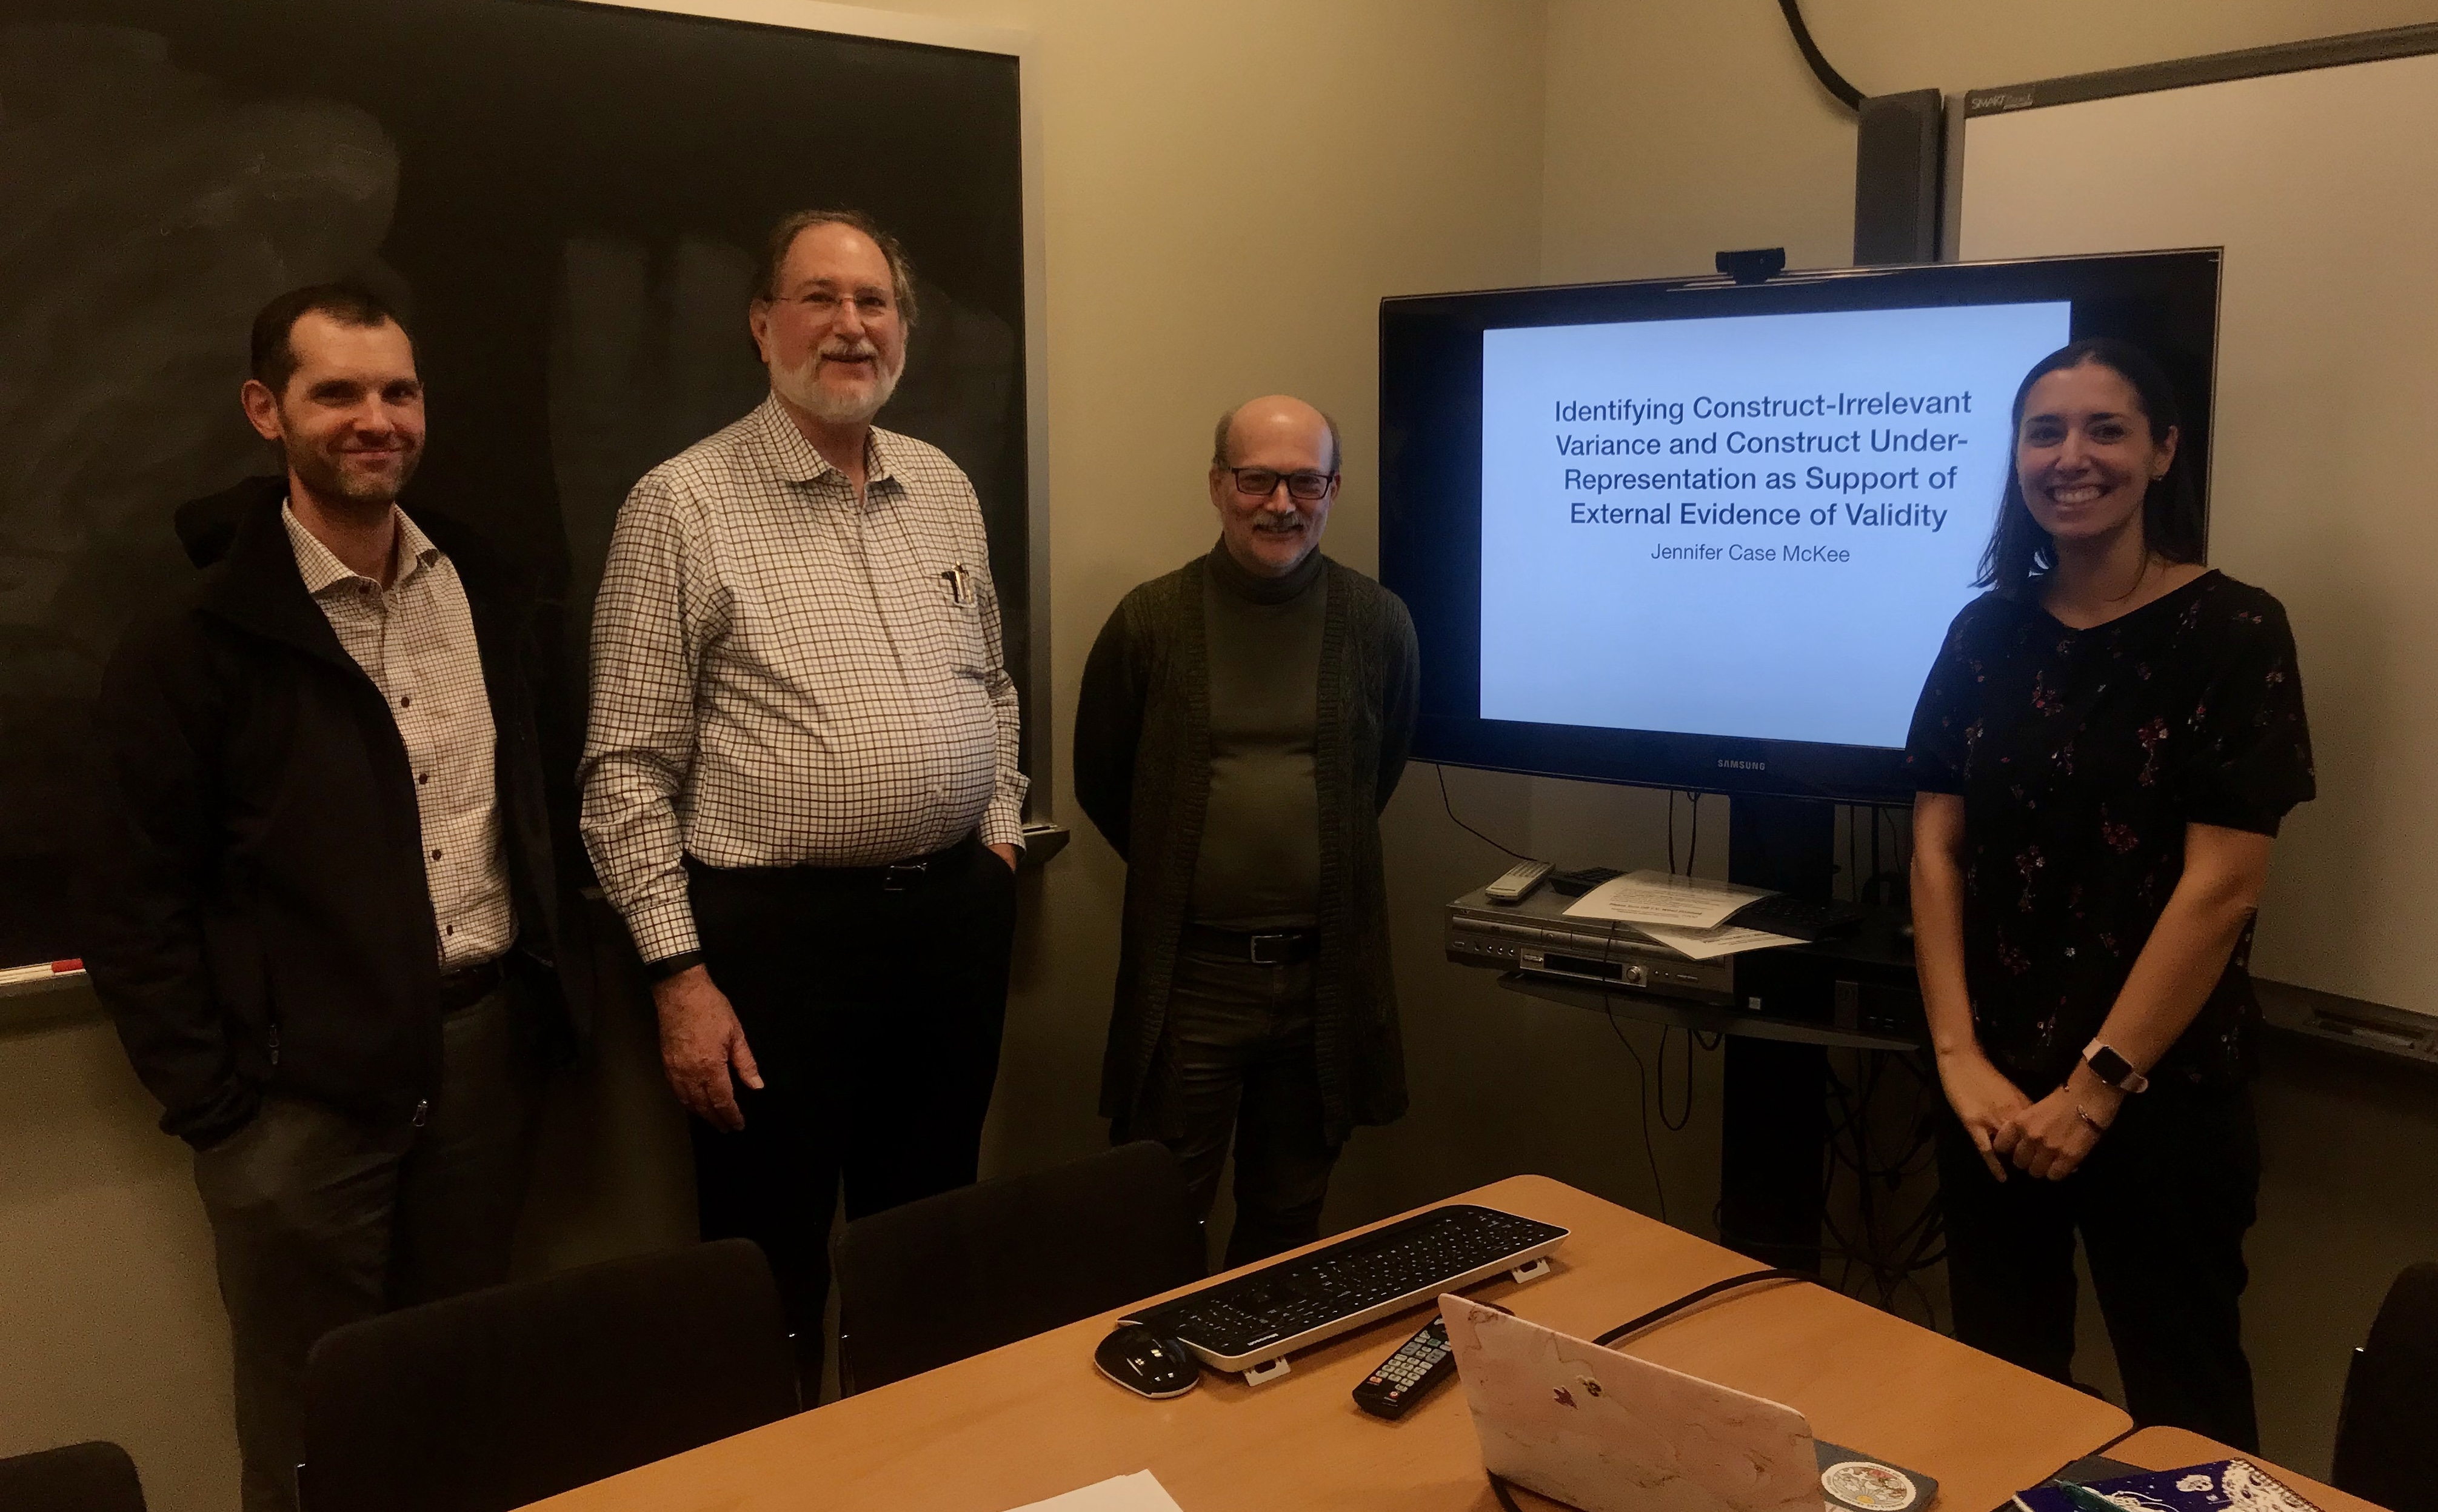 Jennifer Case McKee with her dissertation committee. From left: Dr. David Rindskopf, Dr. Keith Markus, and Dr. Jennifer Case McKee